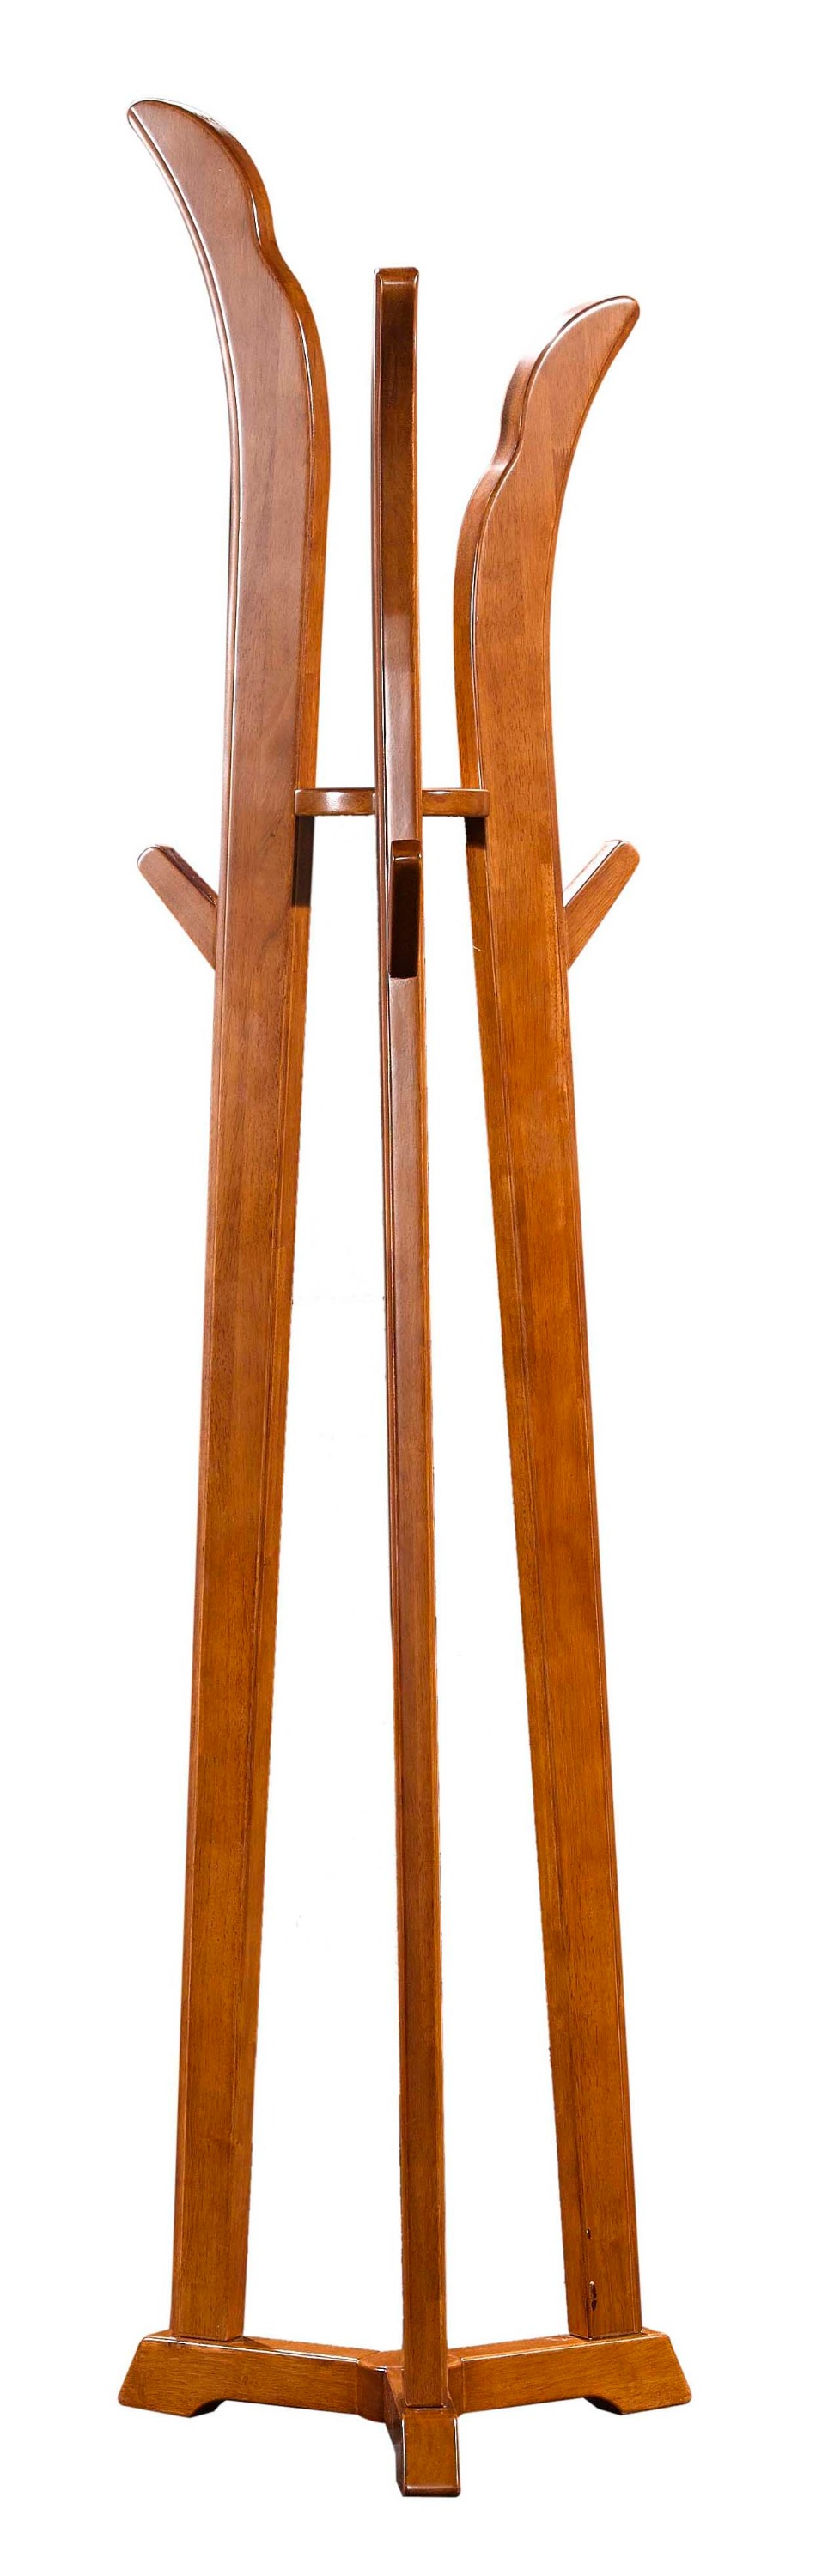 Modern classic bedroom home furnishing wooden coat rack stand 8188